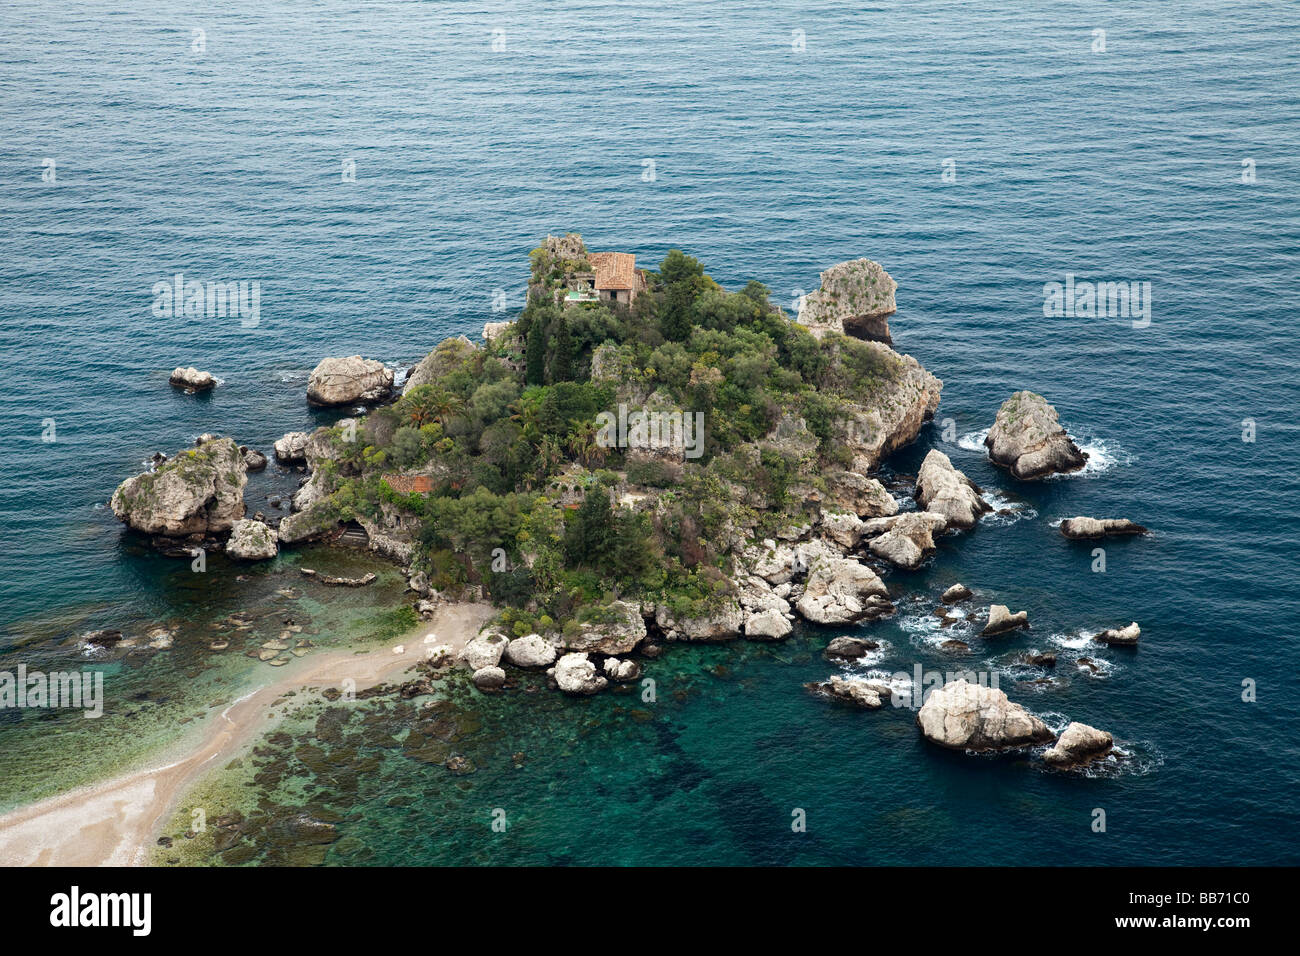 An aerial view of the island of Isola Bella, at the old medieval town of Taormina, Sicily, Italy. Stock Photo